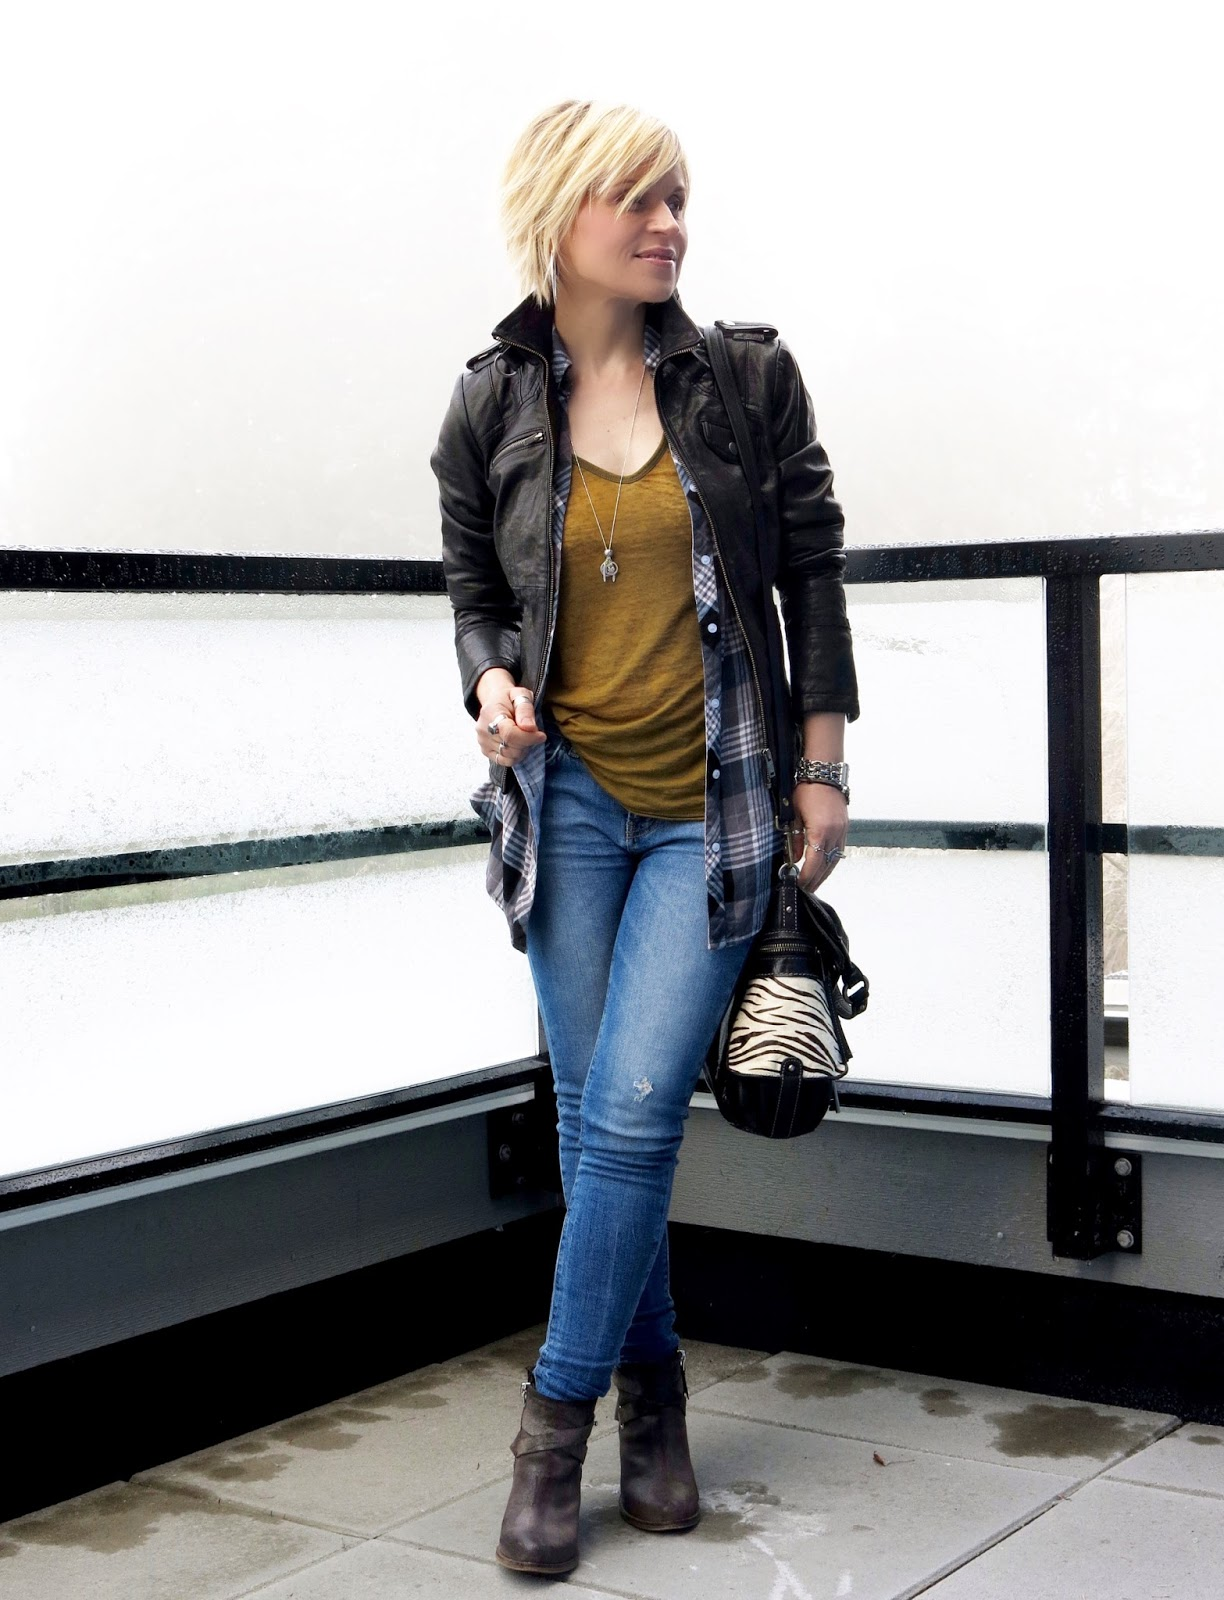 styling a moto jacket with layered shirts, skinny jeans, and booties